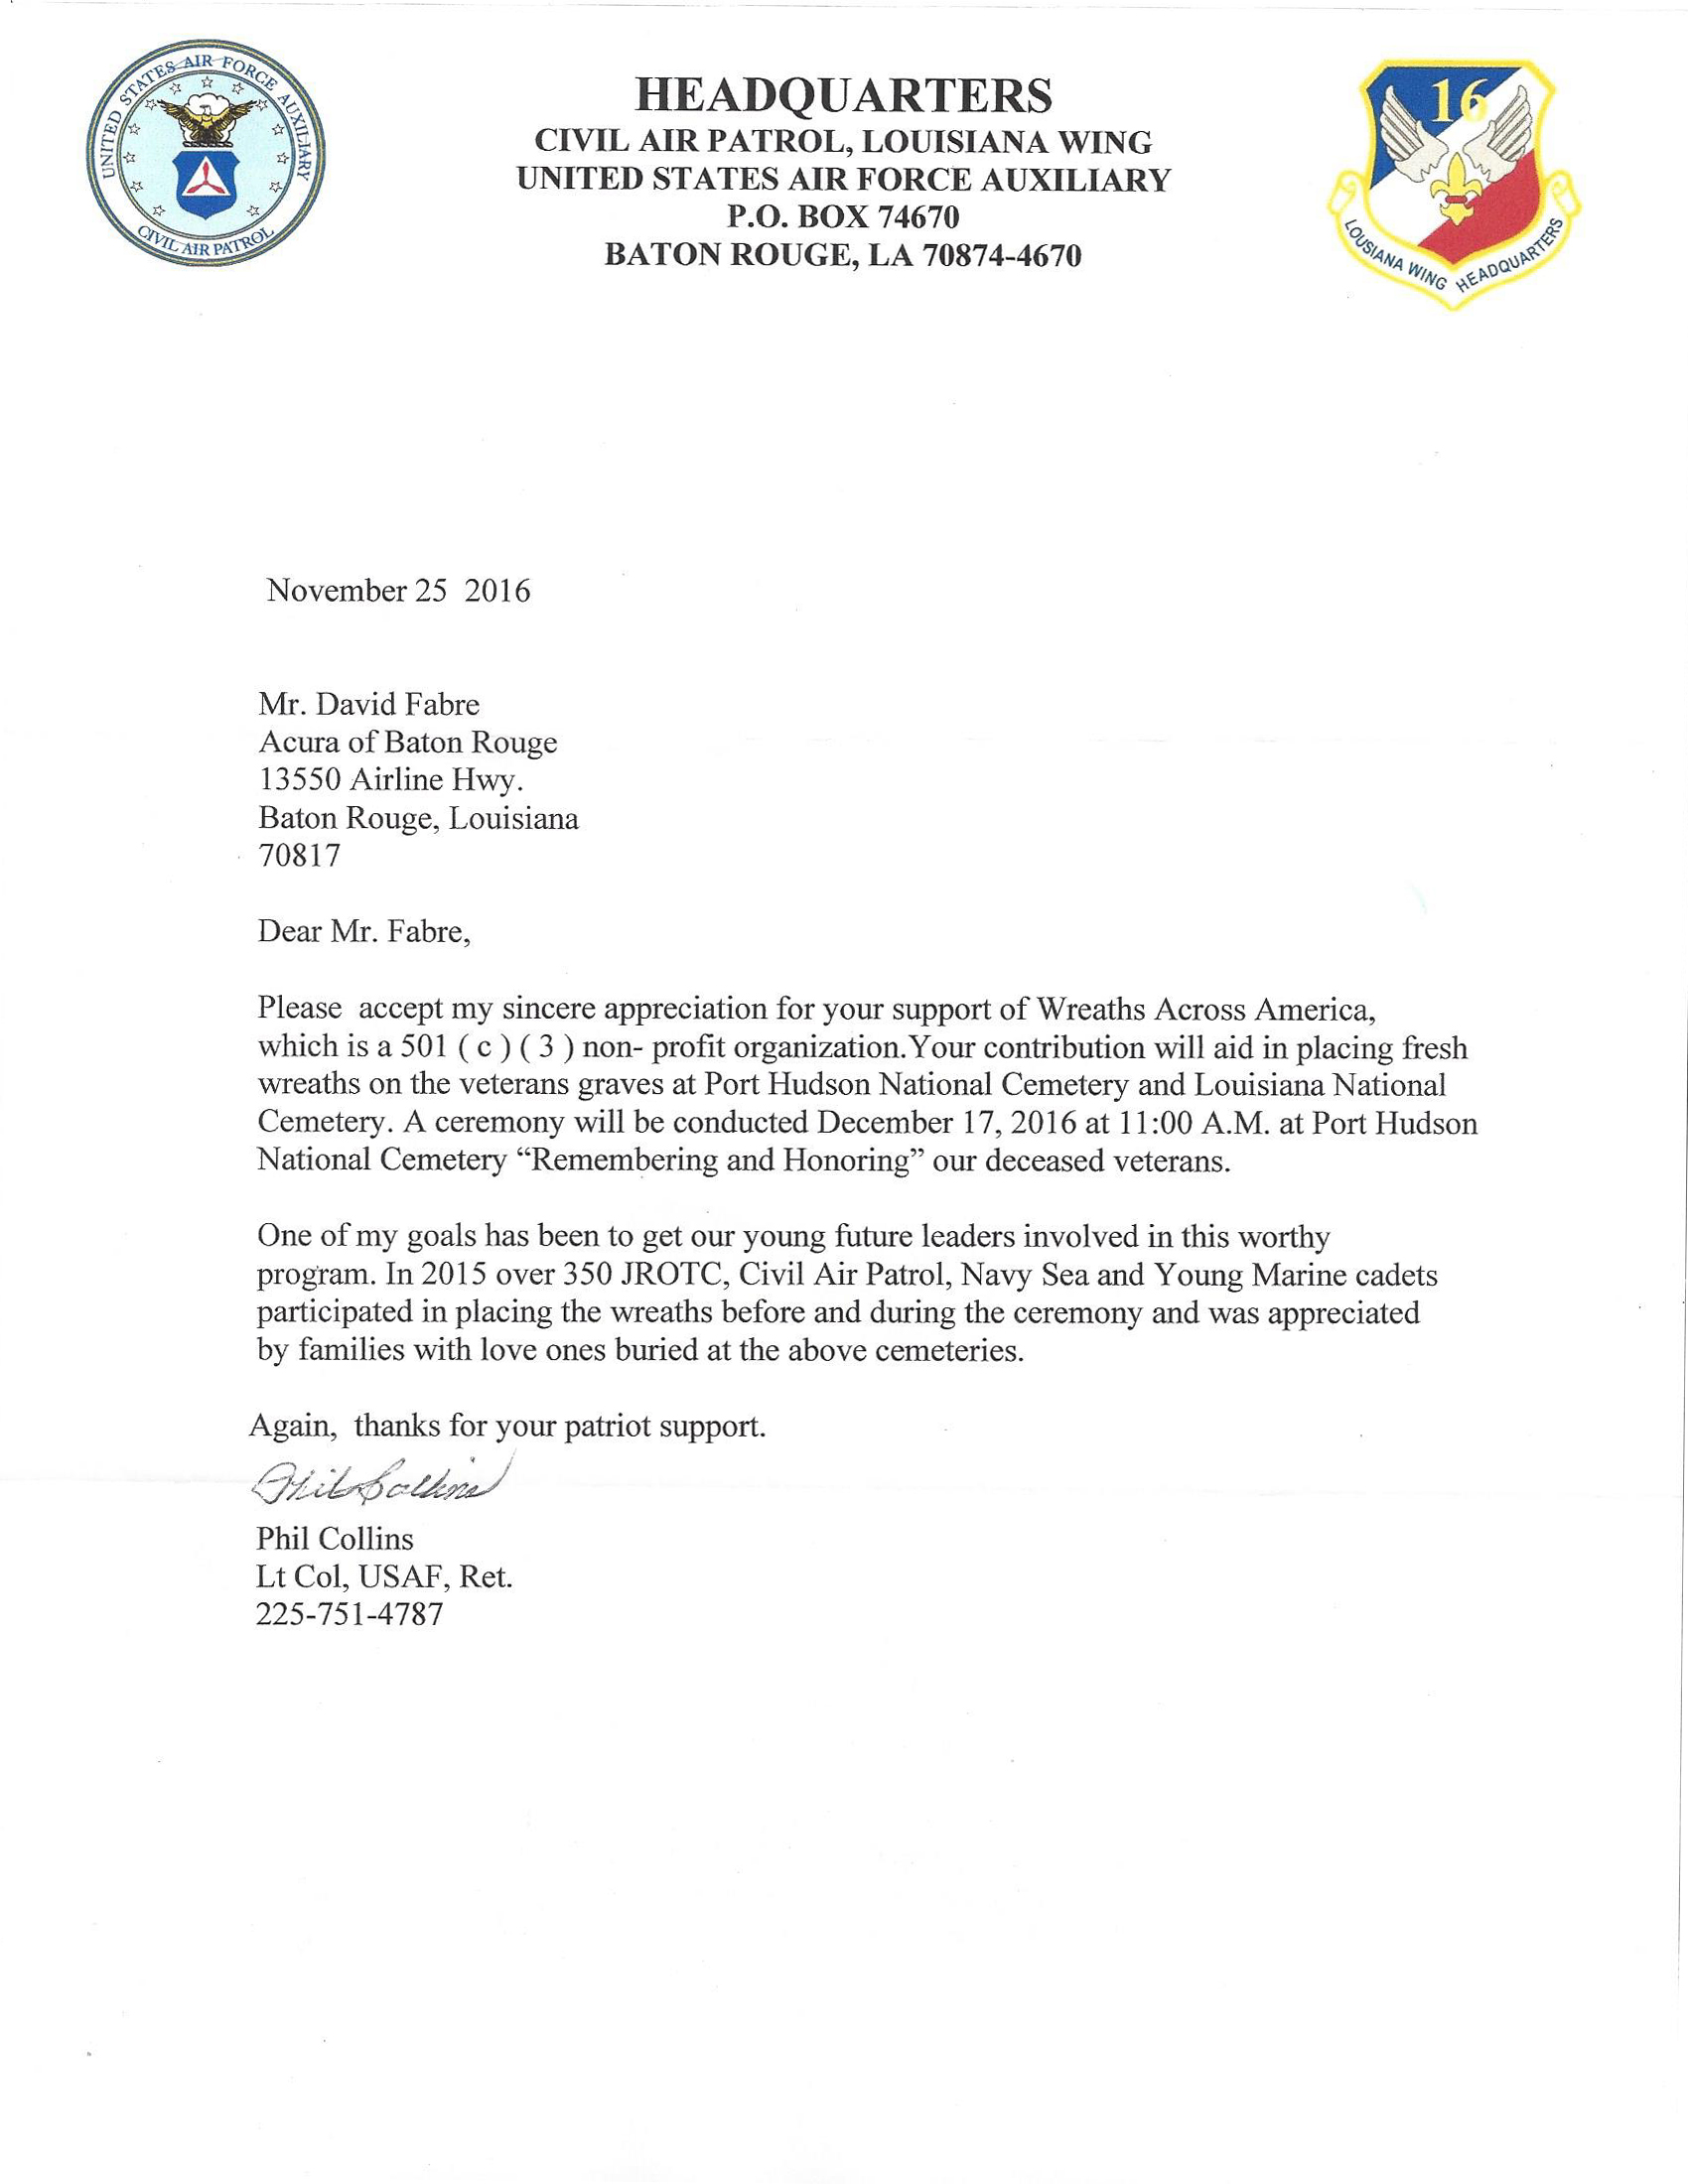 Wreaths Across America Letter Of Appreciation